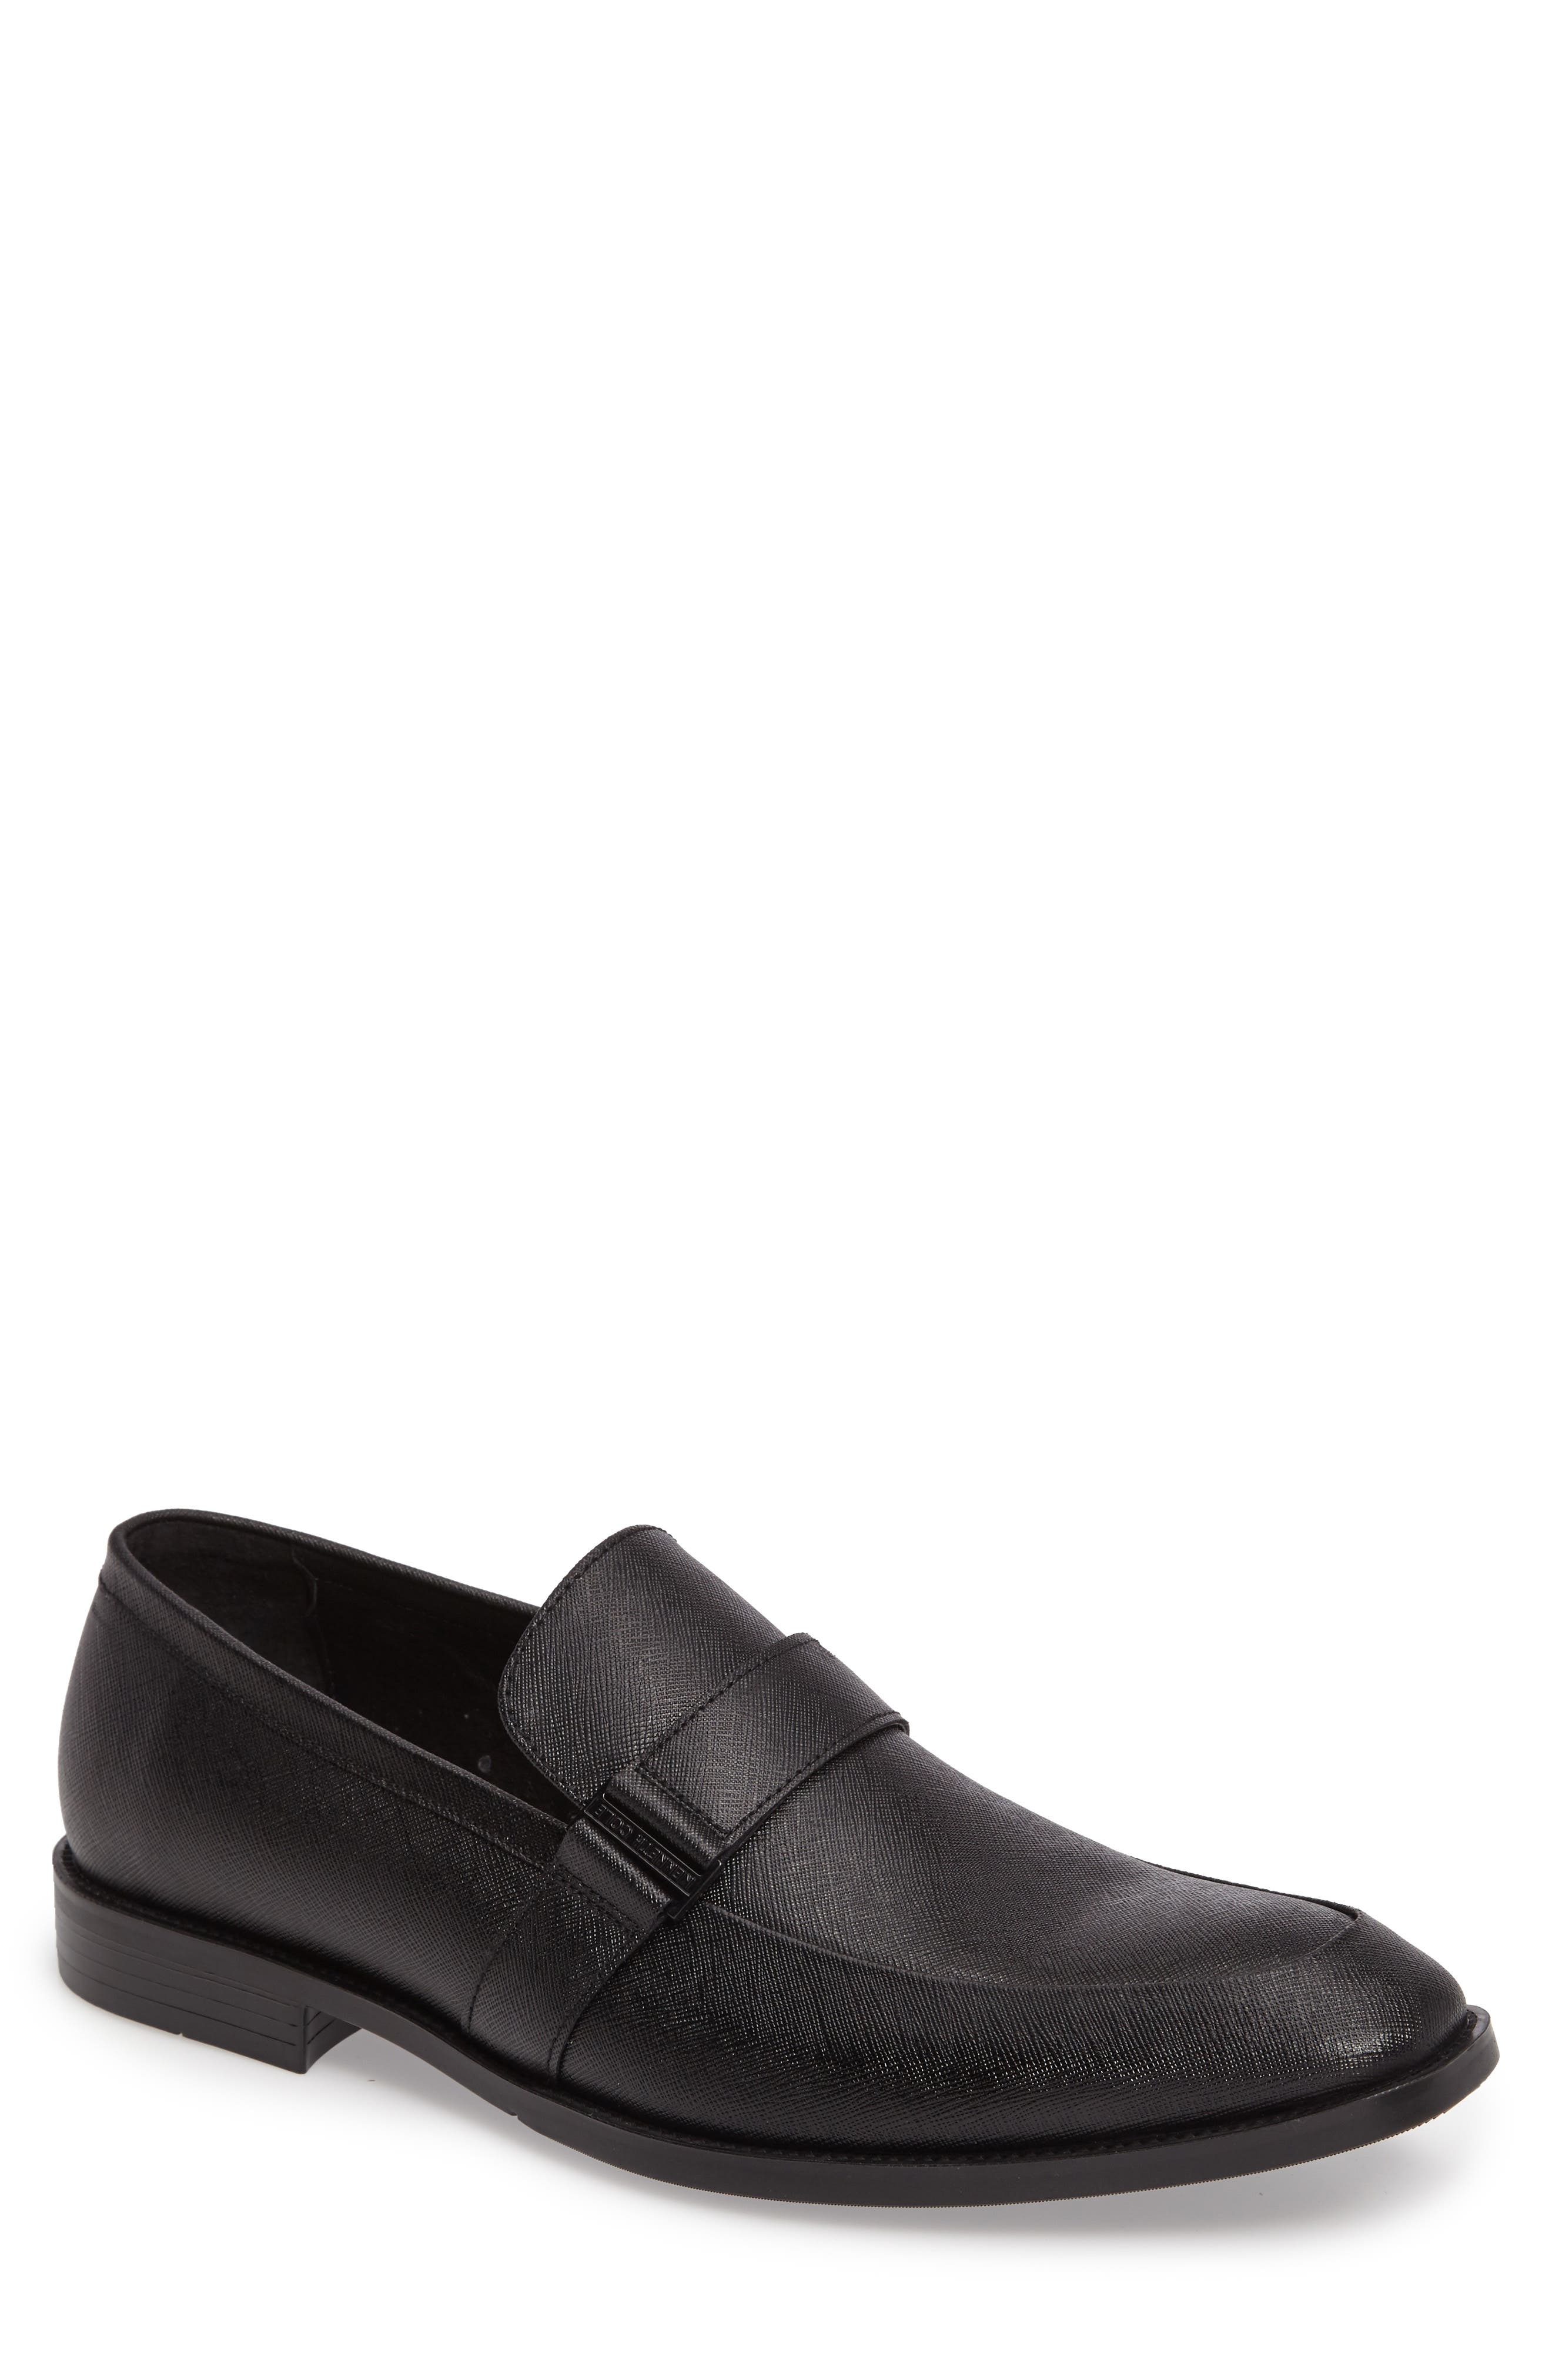 Major Ticket Loafer,                             Main thumbnail 1, color,                             001